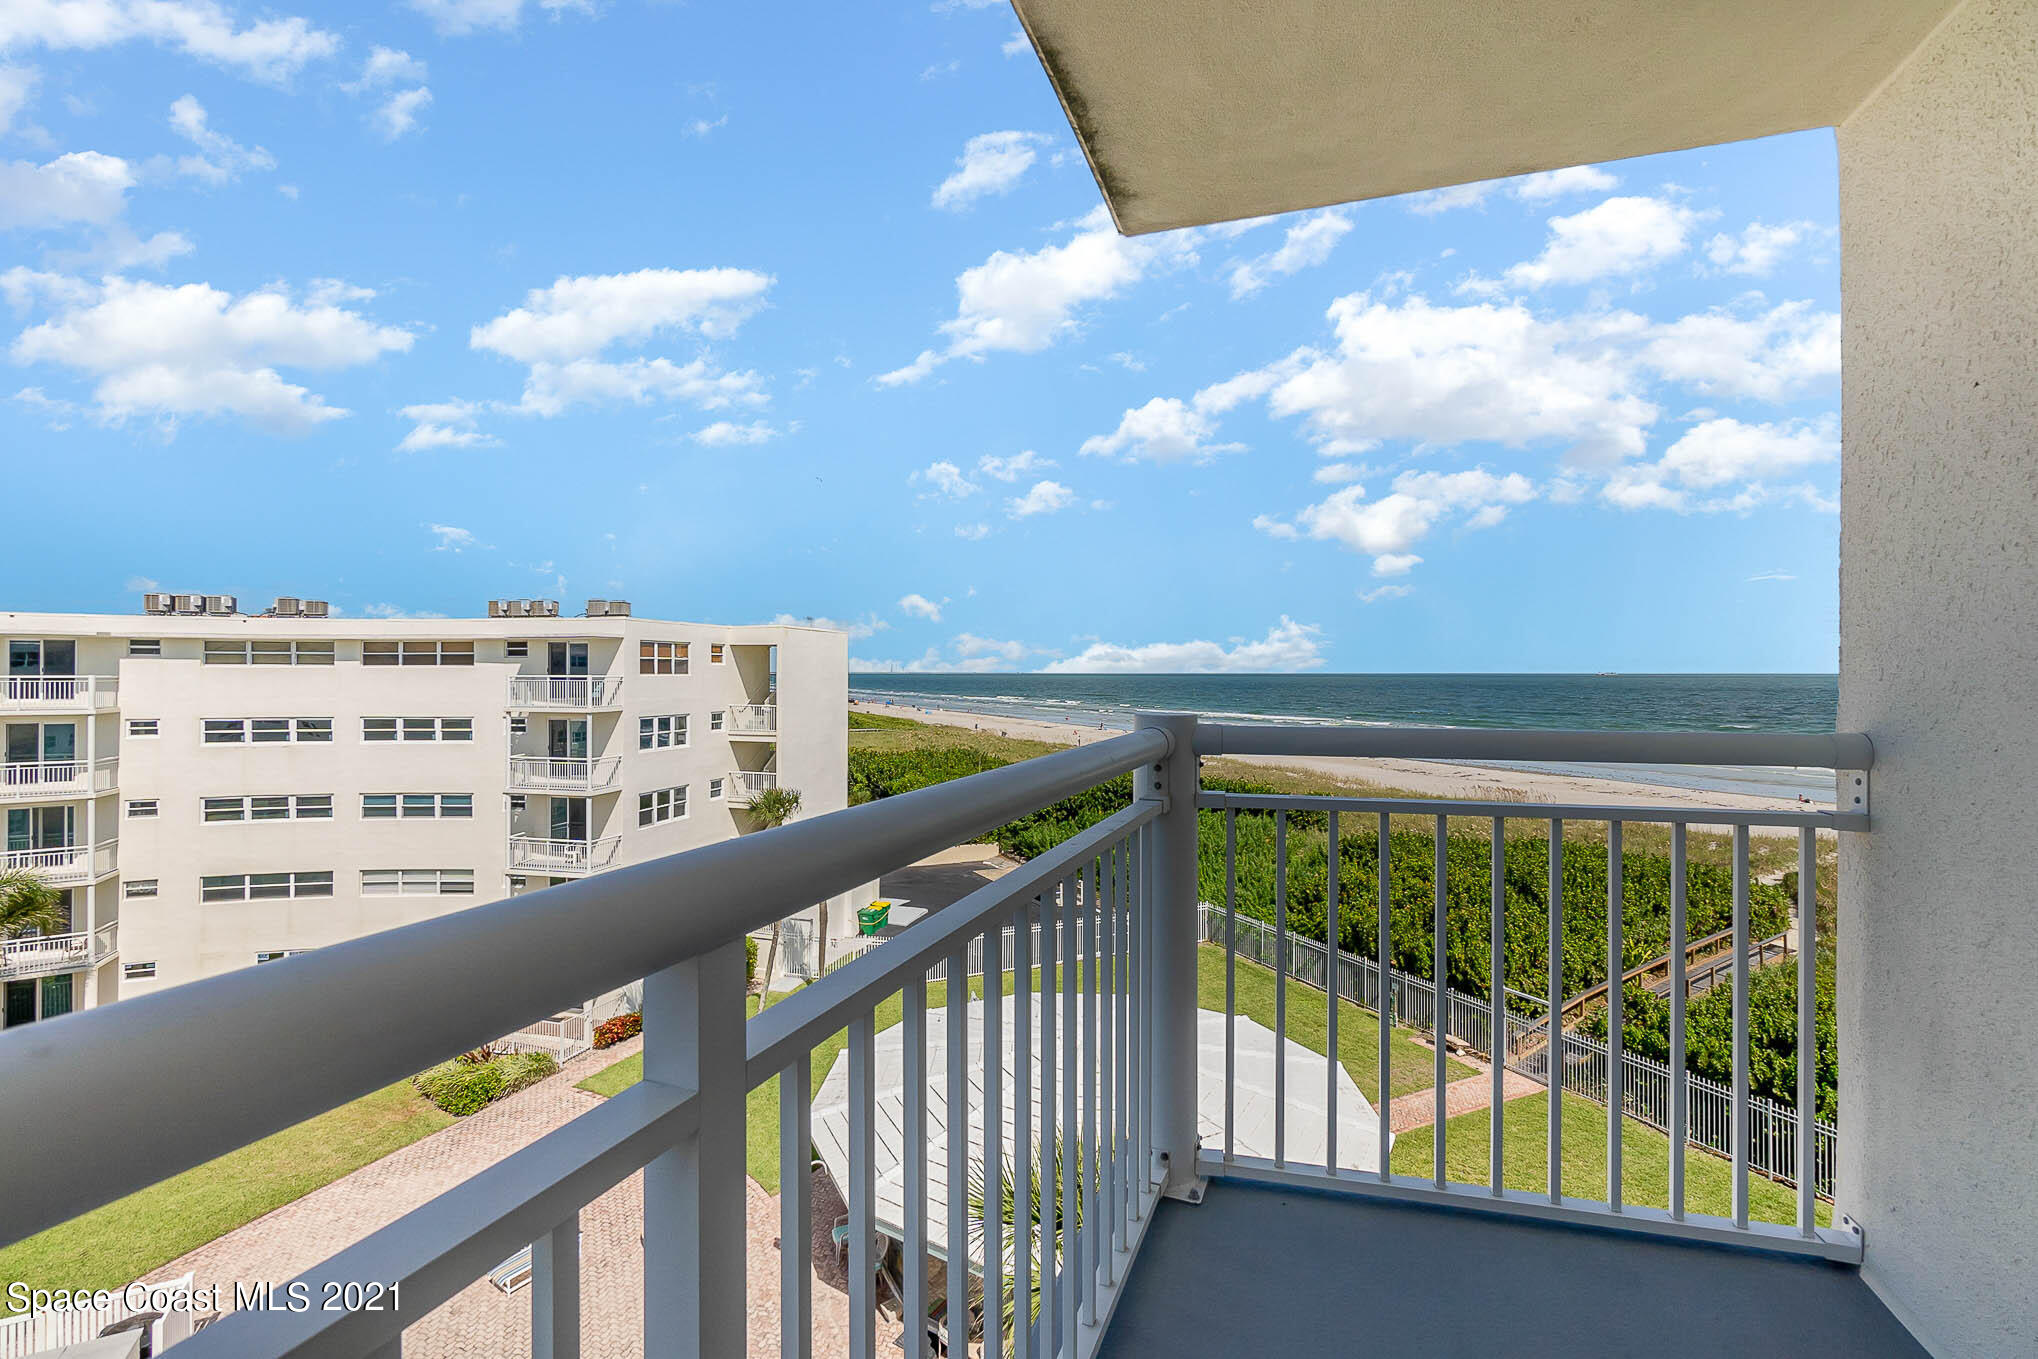 Truly unique, savor the ocean views from every window of this TOP FLOOR, SOUTHEAST CORNER unit. Abundant natural light flows throughout the perfectly proportioned open living area to your balcony that overlooks the beach & community pool. You will love the size of the primary and guest suites plus all the closet and storage space. With its relaxing, easy-care living everyday at the Crossway will feel like vacation, enjoy the heated pool year round, private beach access, lush landscaping, and BBQ area. All new doors and PGT impact windows are being installed by the association and any assessments have been paid. The location can't be beat, right in the heart of Cocoa Beach, you are walking distance to everything, shopping, grocery store, restaurants, and entertainment.